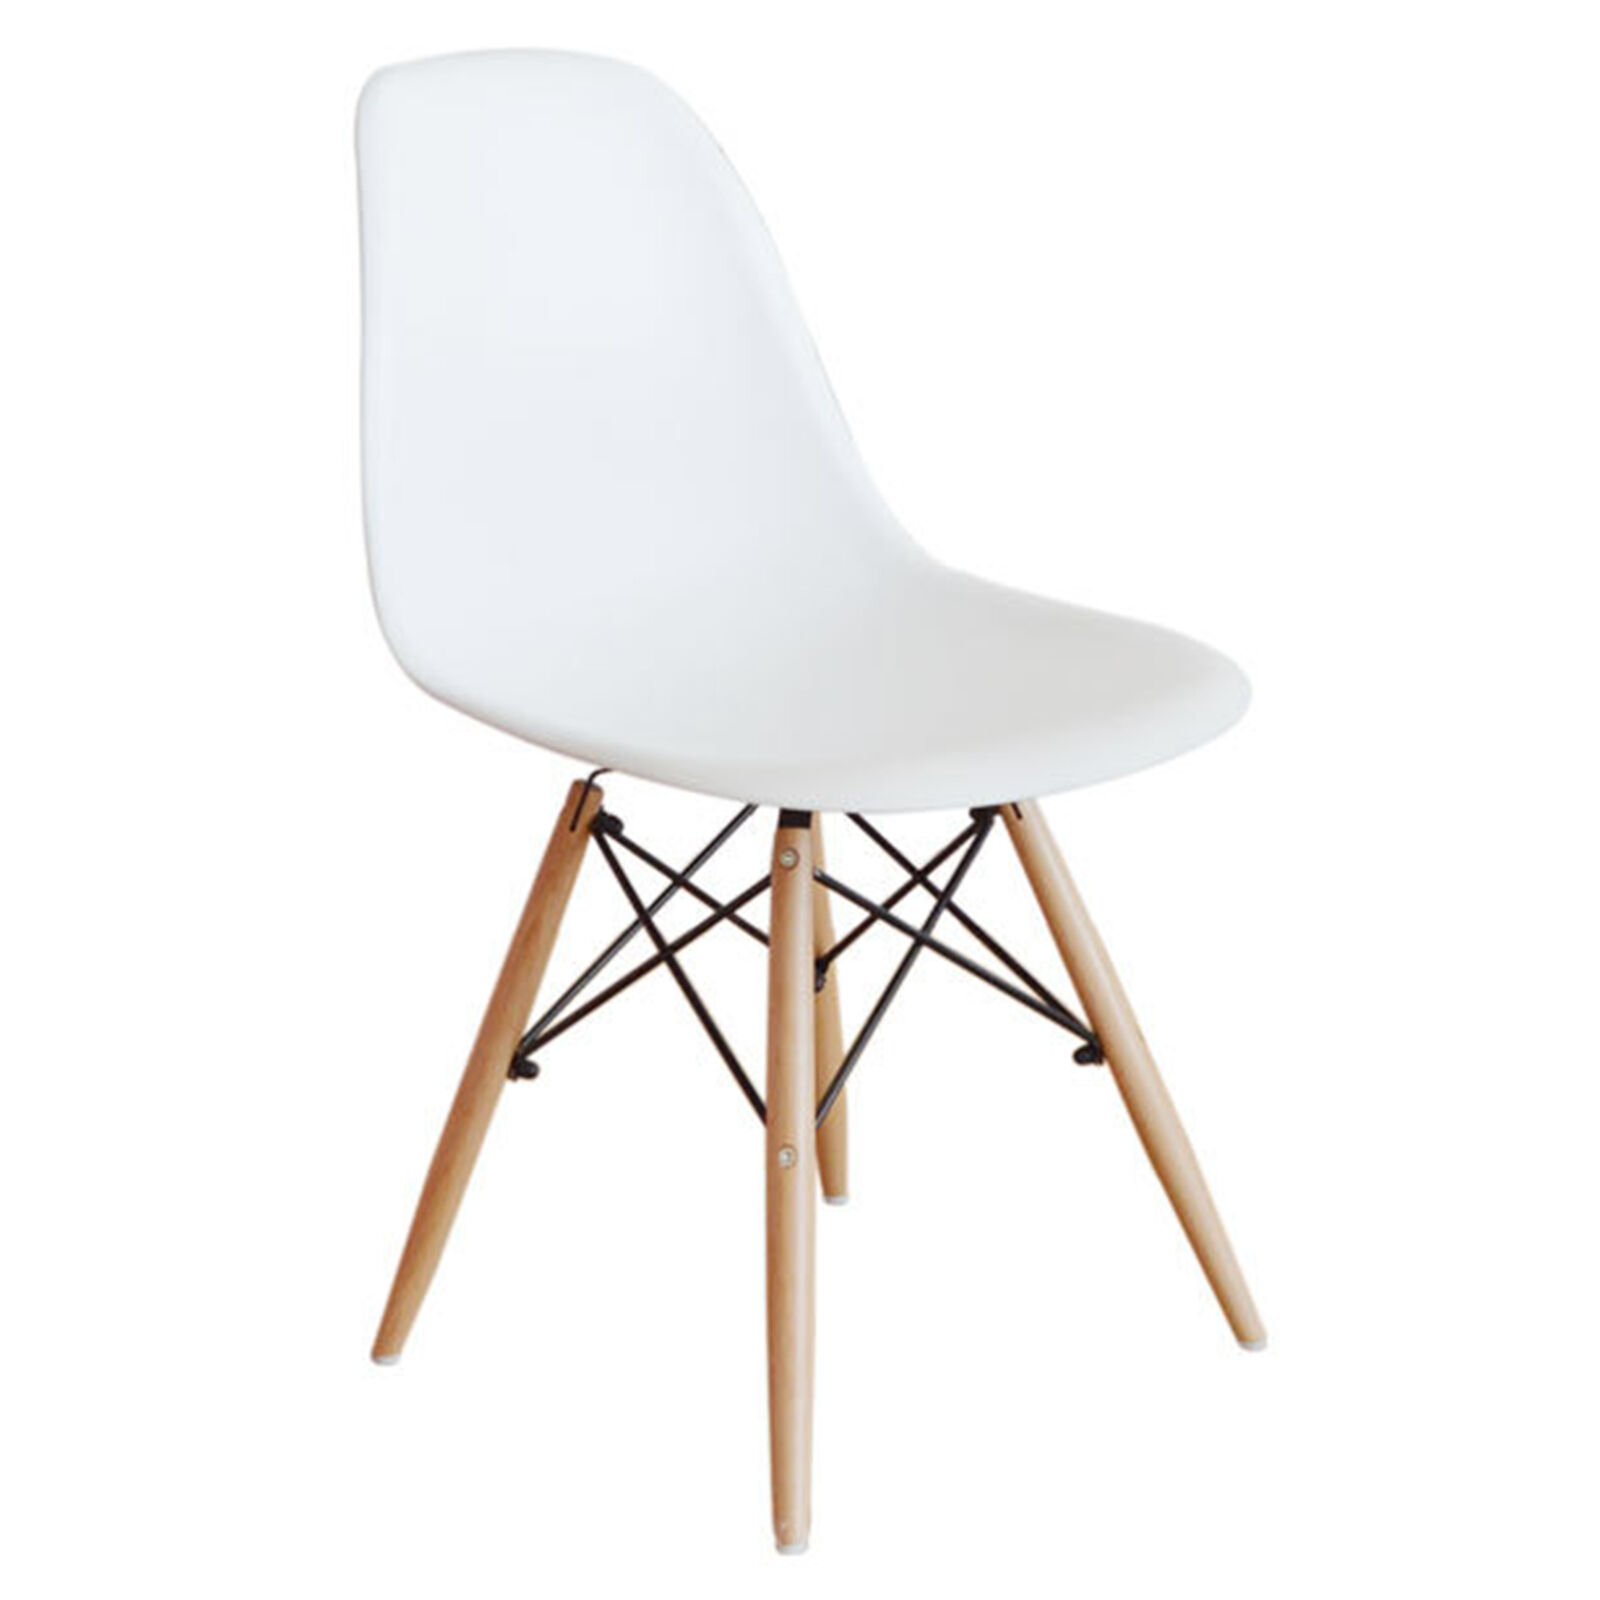 eiffel chair wood legs morris chairs for sale white with at home